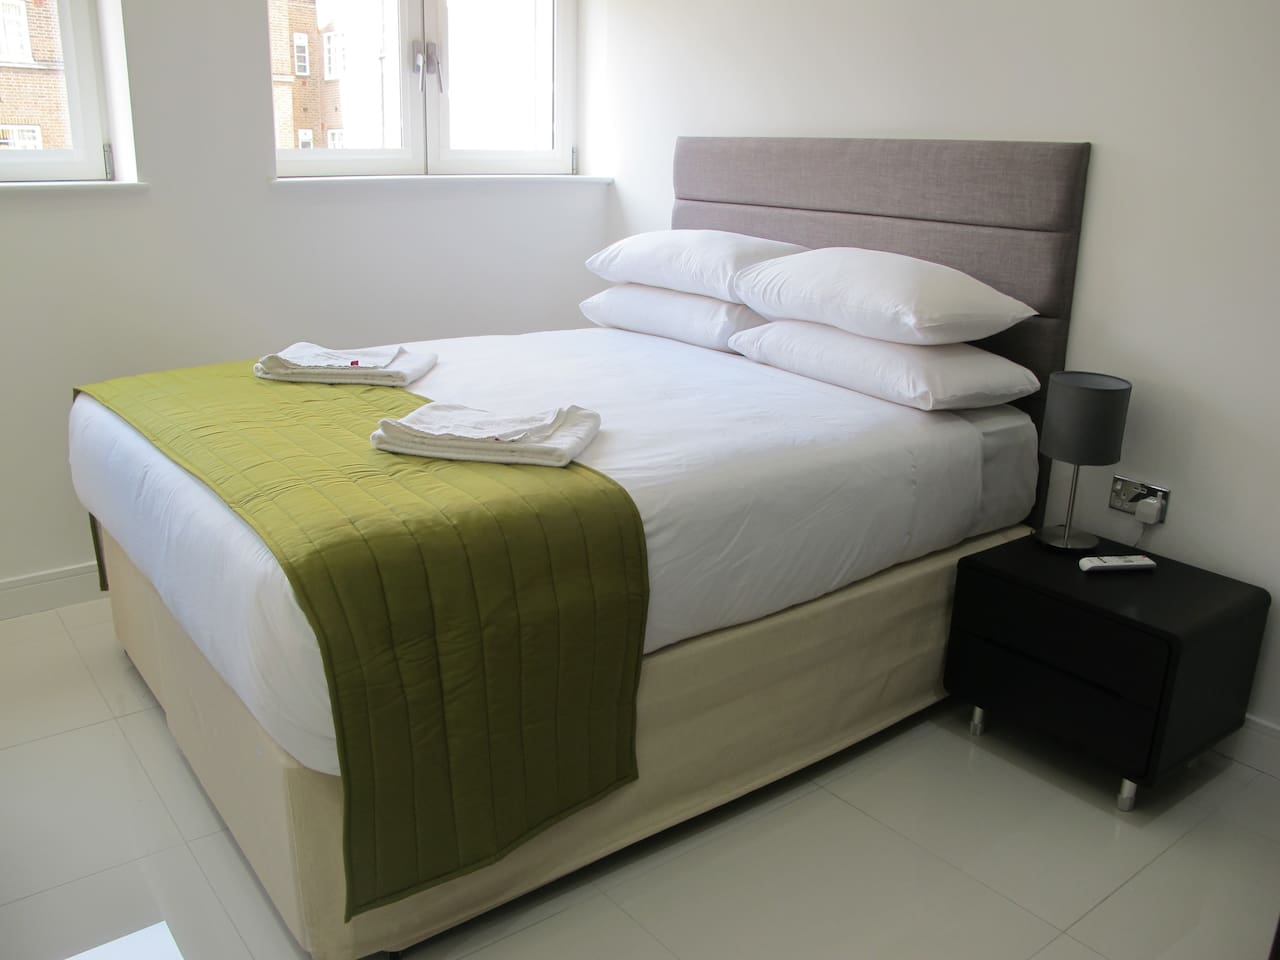 KING SIZE BED WITH MODERN AND BRIGHT FURNISHINGSIN